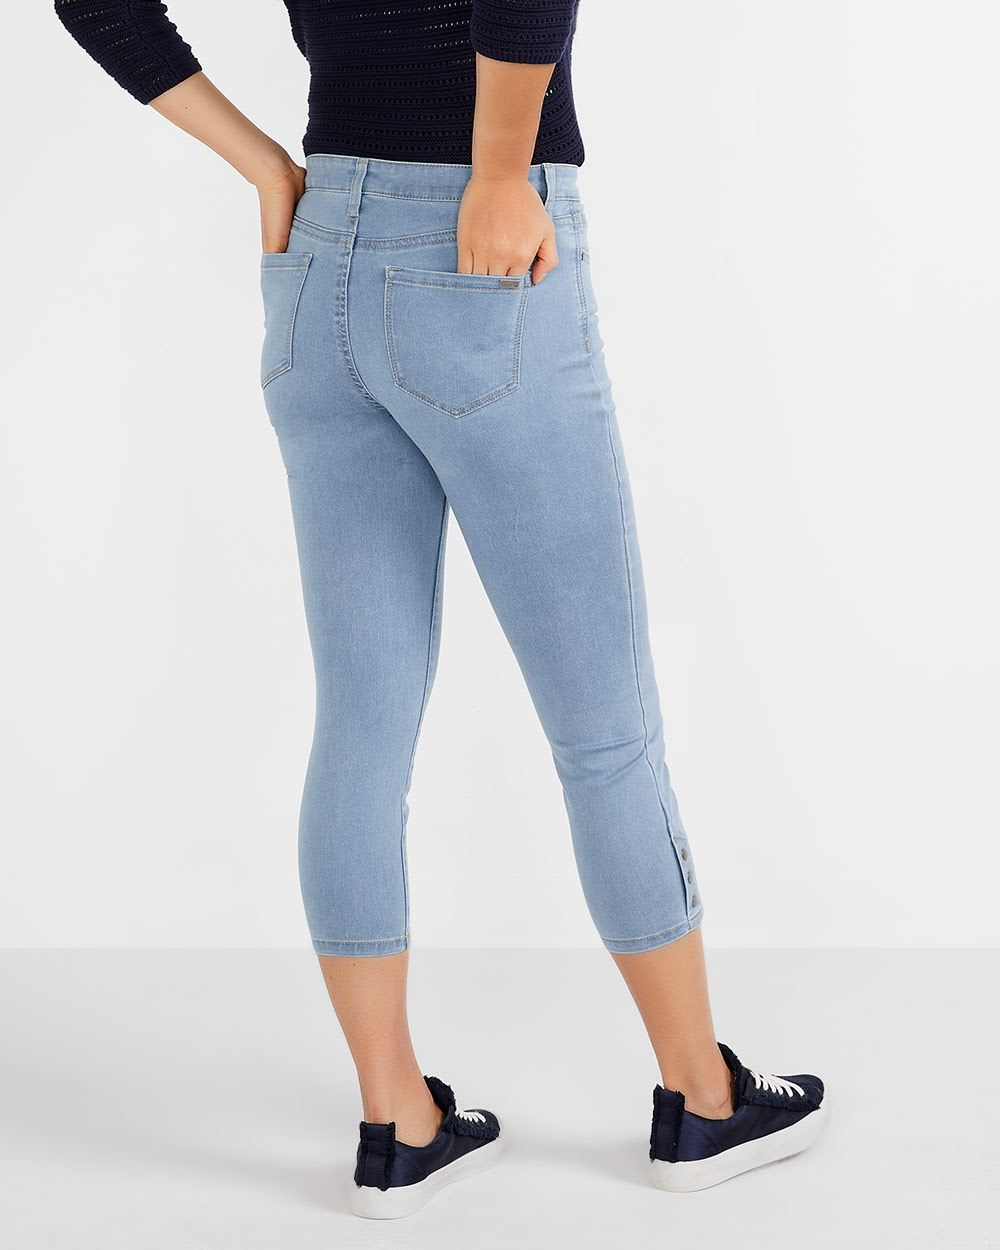 The Petite Signature Soft Capris with Snaps